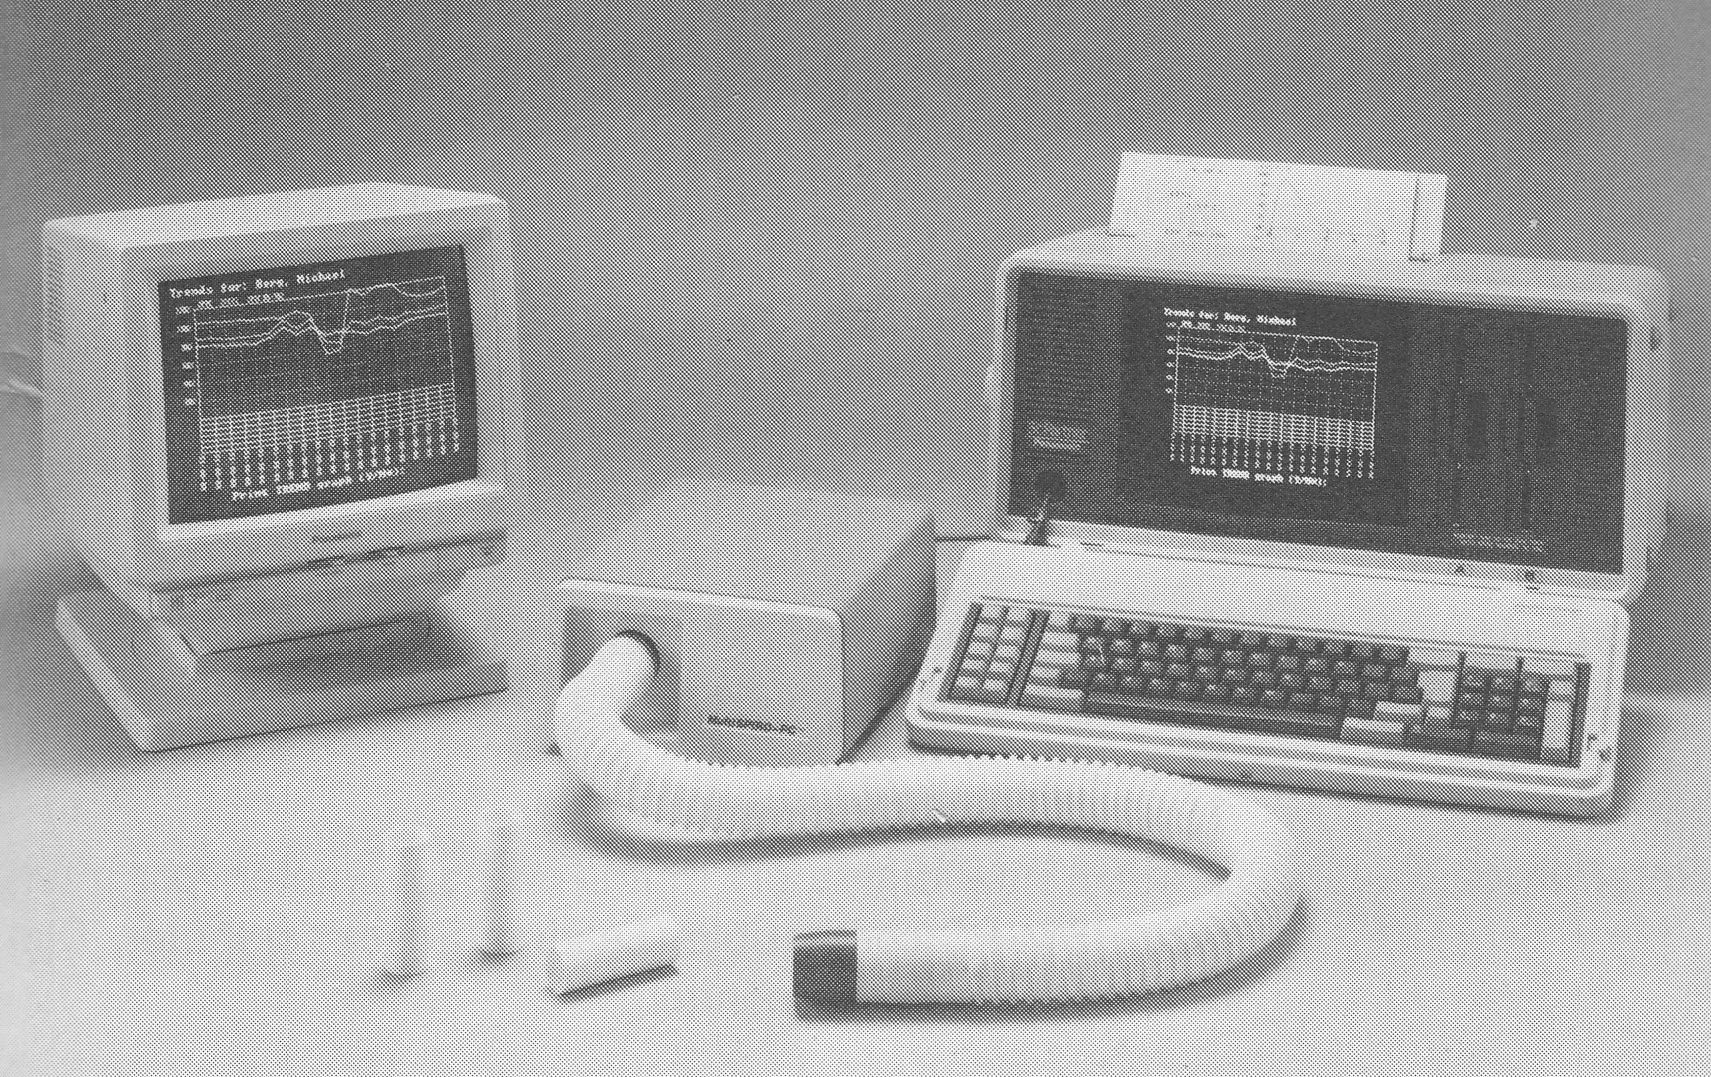 Spirometer_MultiSpiro-PC_1987